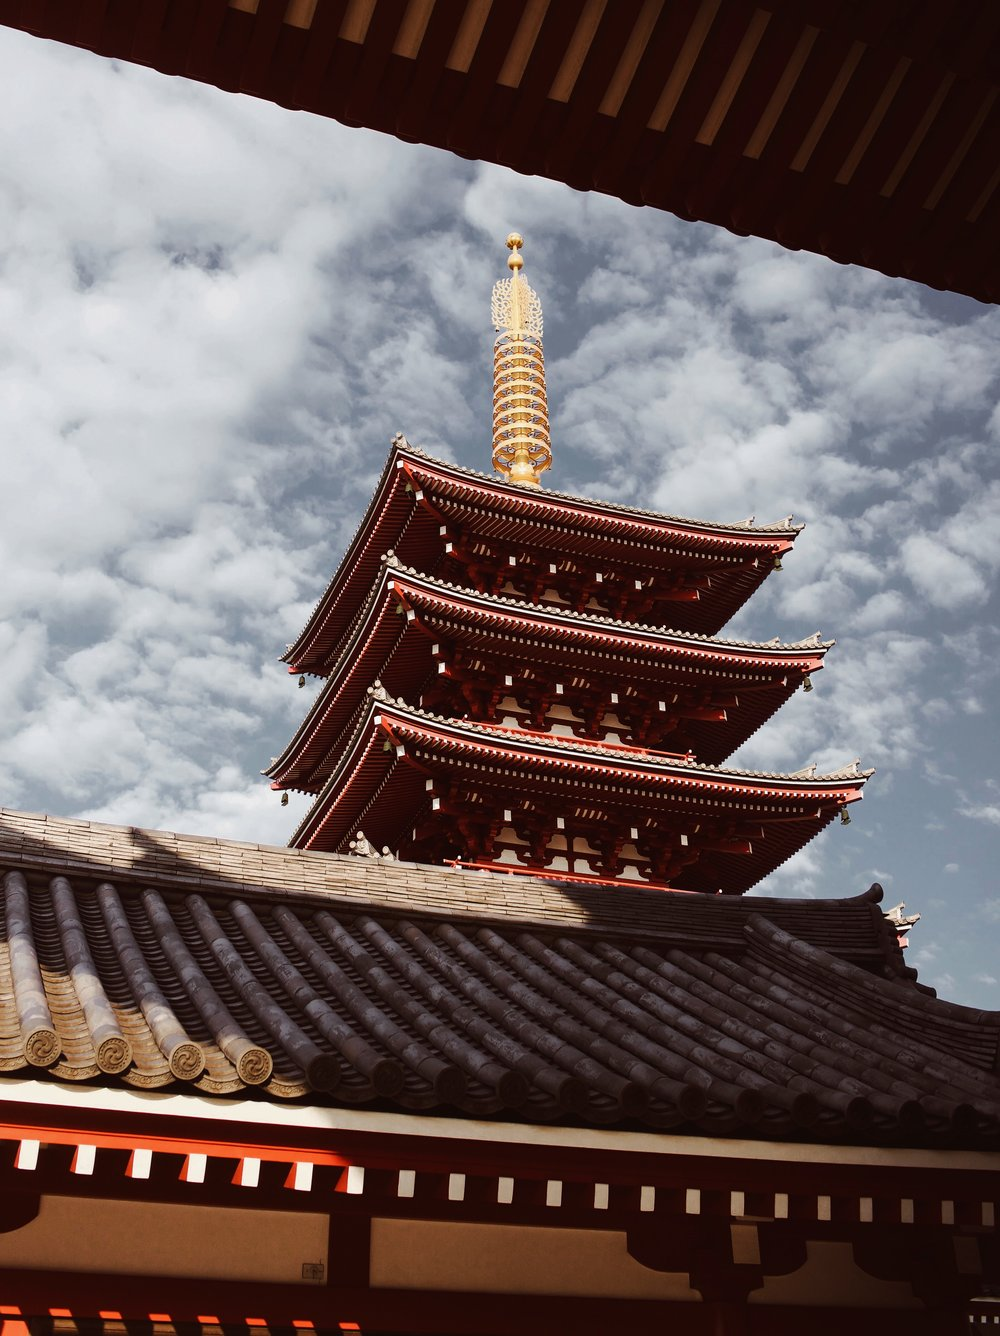 The-Look-Principle-Japanese-Shrines-And-Temples-5.jpg